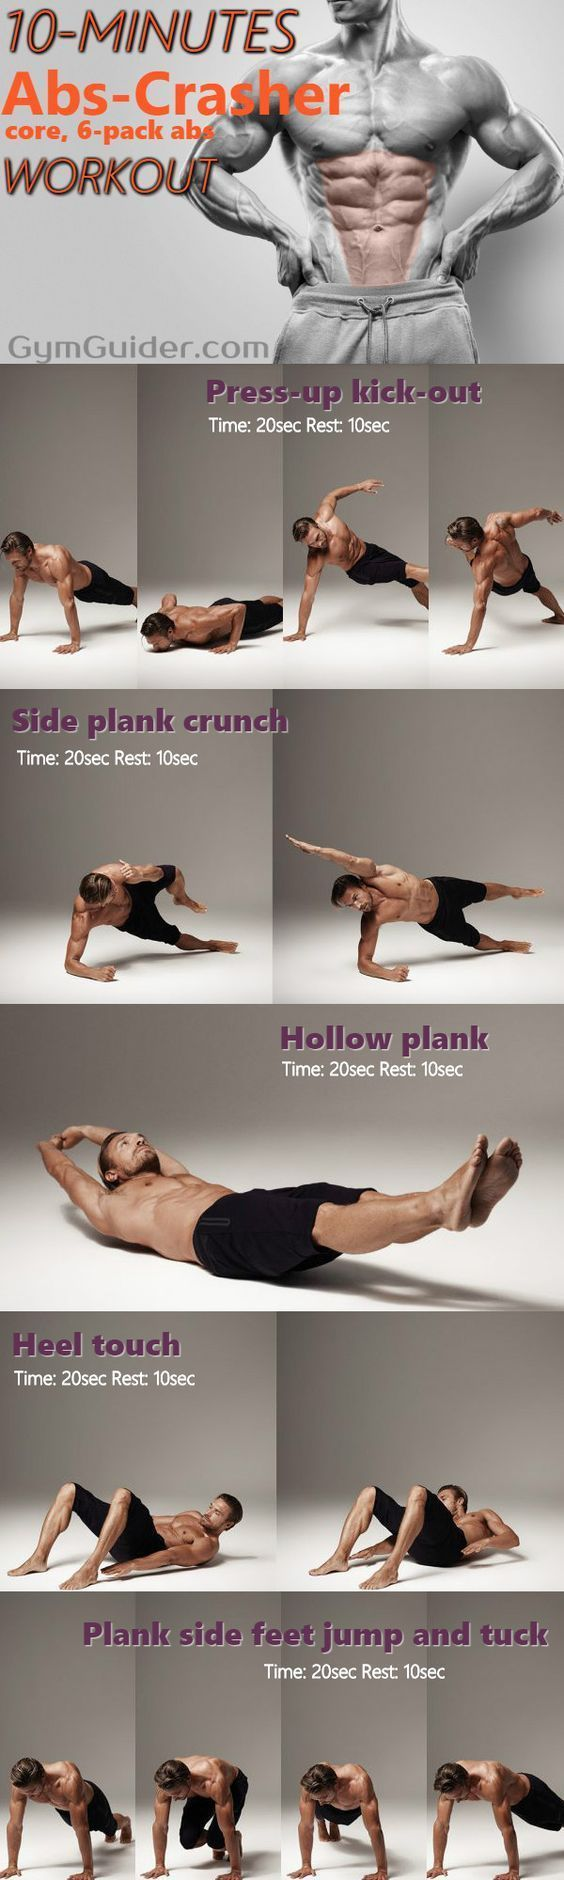 10 Minute Bodyweight Abs Workout You Can Do At Home #abs #workout #sixpackabs #fitness #10Minutes #A...